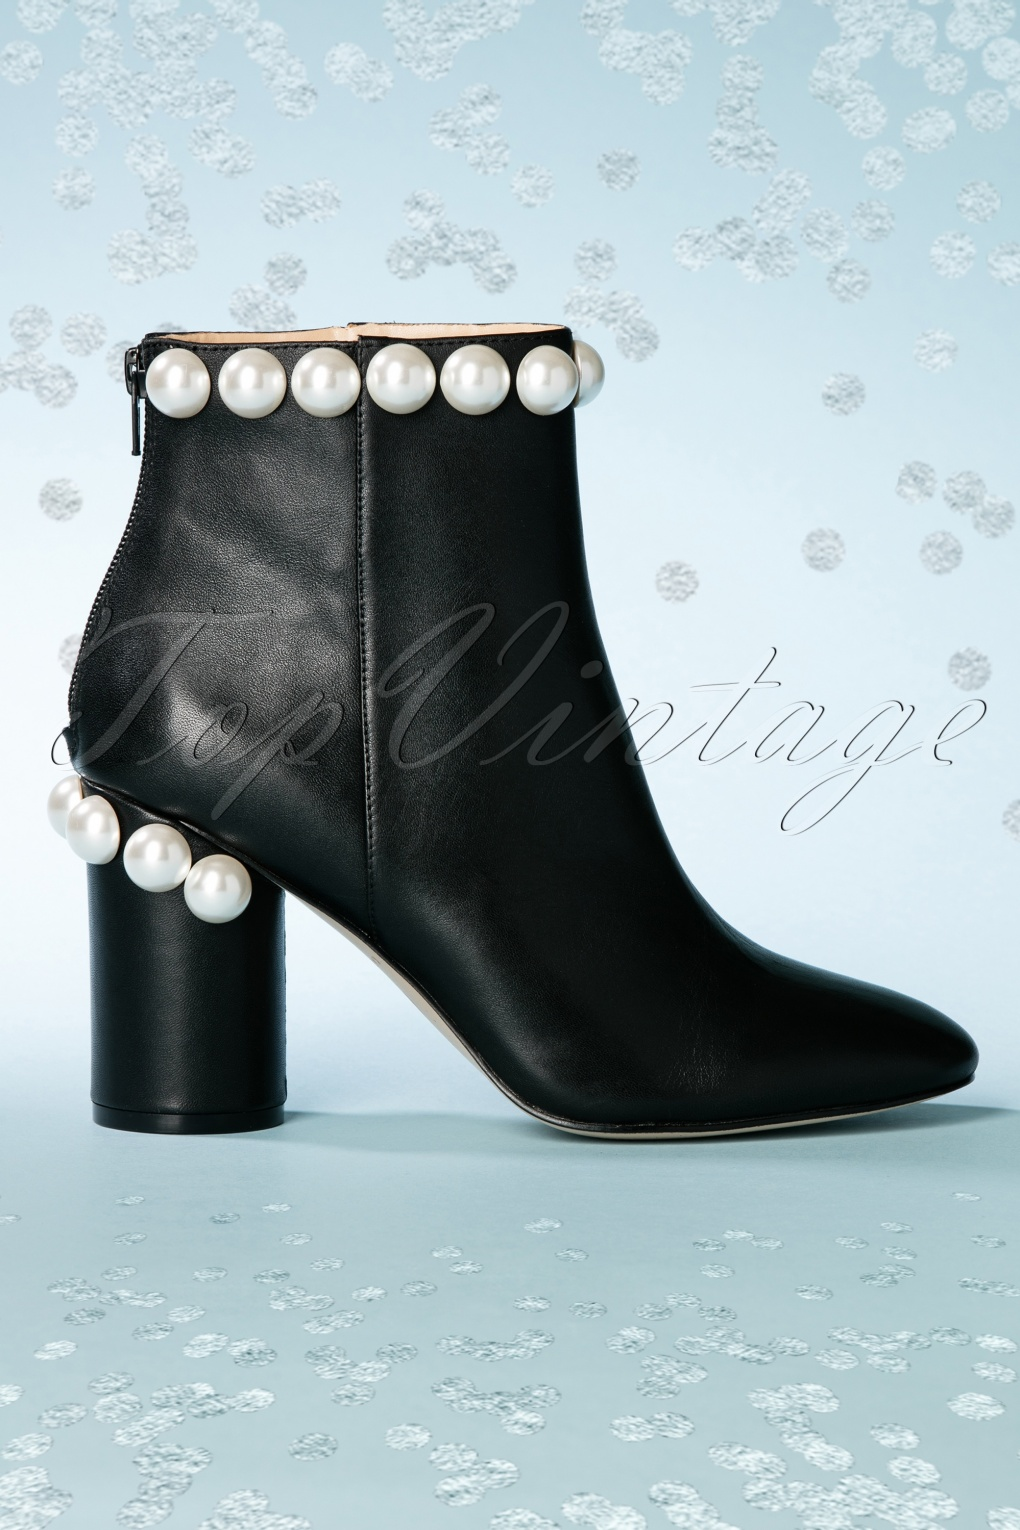 Retro Boots, Granny Boots, 70s Boots 60s Opearl Leather Ankle Booties in Black £165.11 AT vintagedancer.com